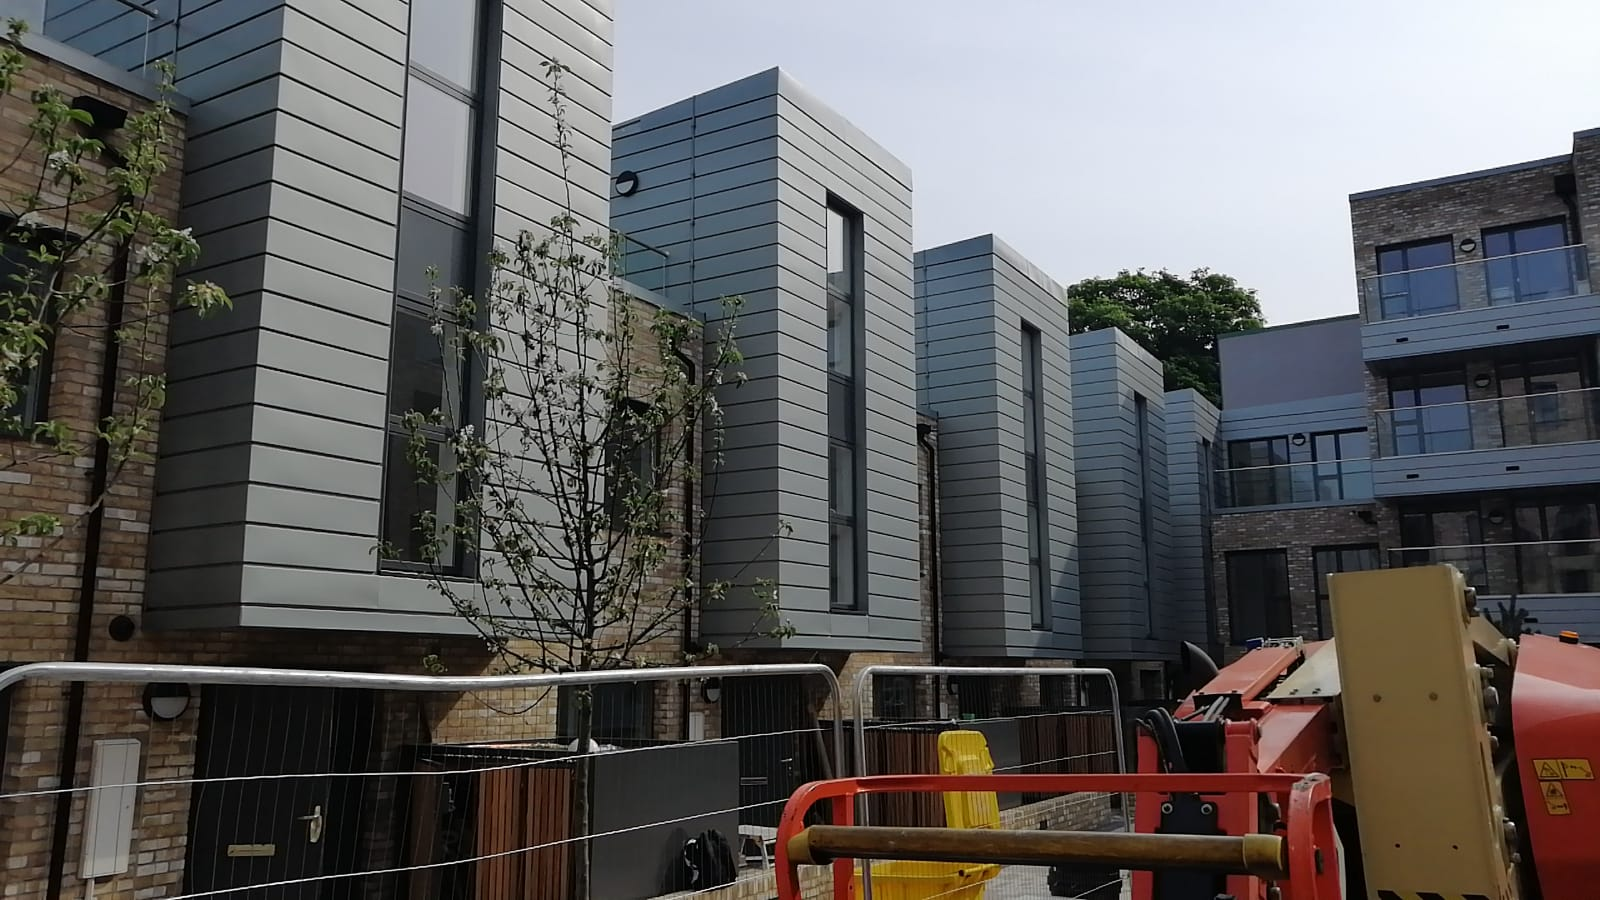 Zinc cladding on some residential properties